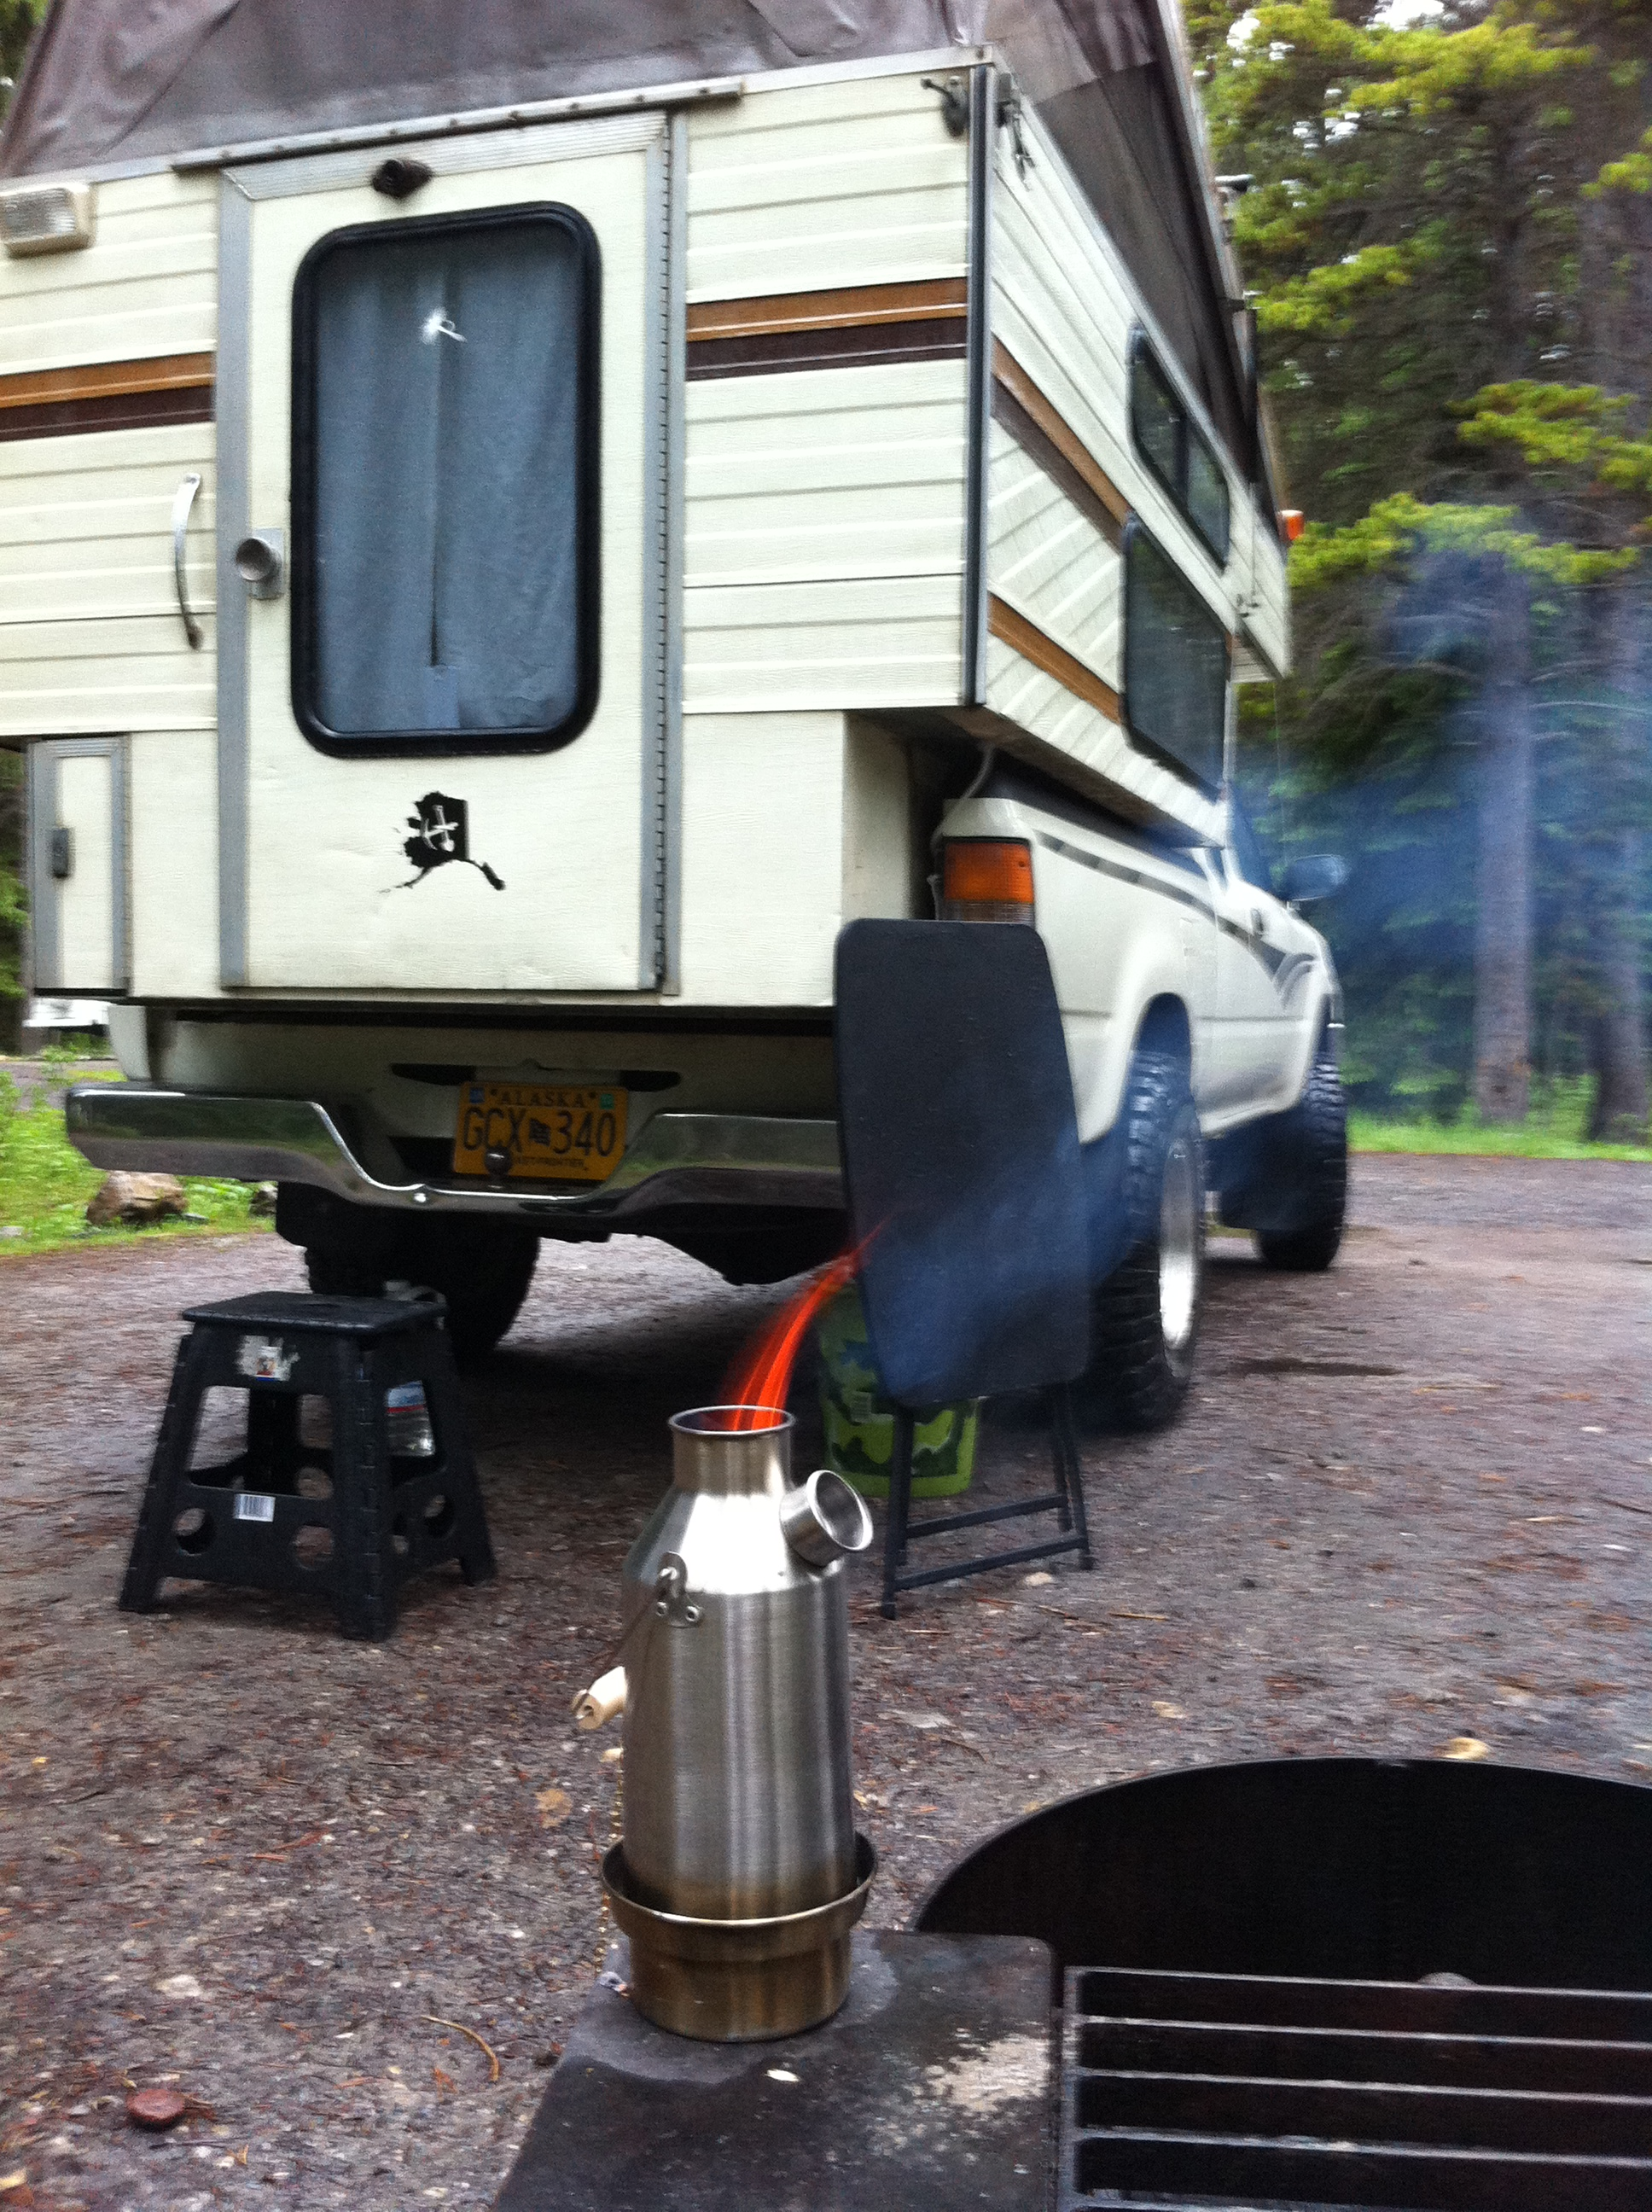 Camper Van & Kelly Kettle